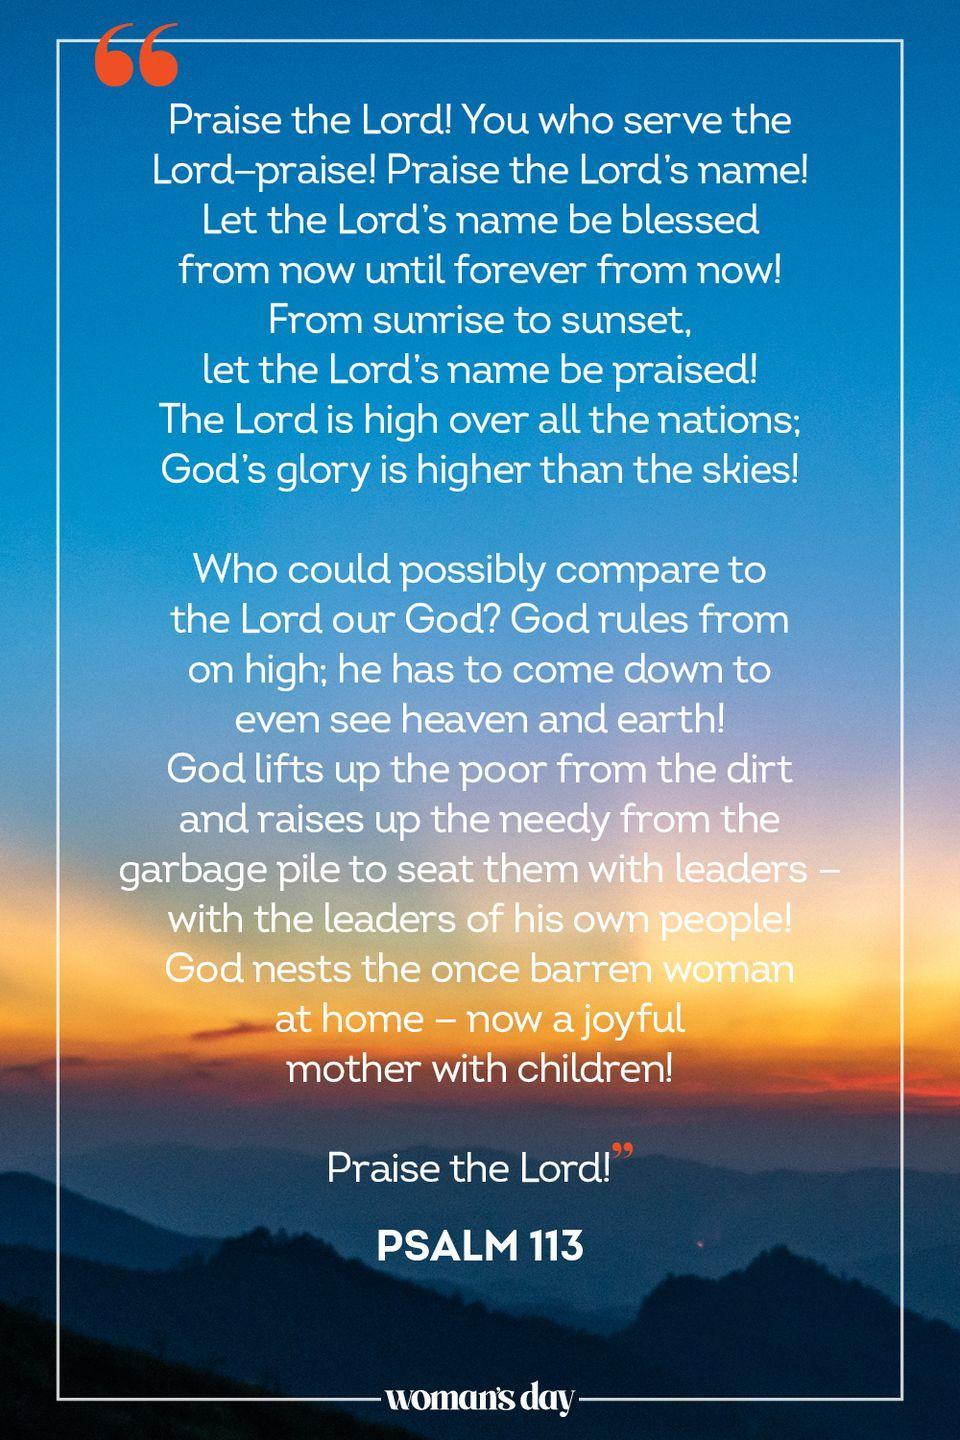 "<p>""Praise the Lord! You who serve the Lord—praise! Praise the Lord's name! <br>Let the Lord's name be blessed from now until forever from now! <br>From sunrise to sunset, let the Lord's name be praised! <br>The Lord is high over all the nations; God's glory is higher than the skies!</p><p>Who could possibly compare to the Lord our God? God rules from on high; he has to come down to even see heaven and earth! <br>God lifts up the poor from the dirt and raises up the needy from the garbage pile to seat them with leaders — with the leaders of his own people! <br>God nests the once barren woman at home — now a joyful mother with children!<br></p><p>Praise the Lord!"" — Psalm 113<br></p>"